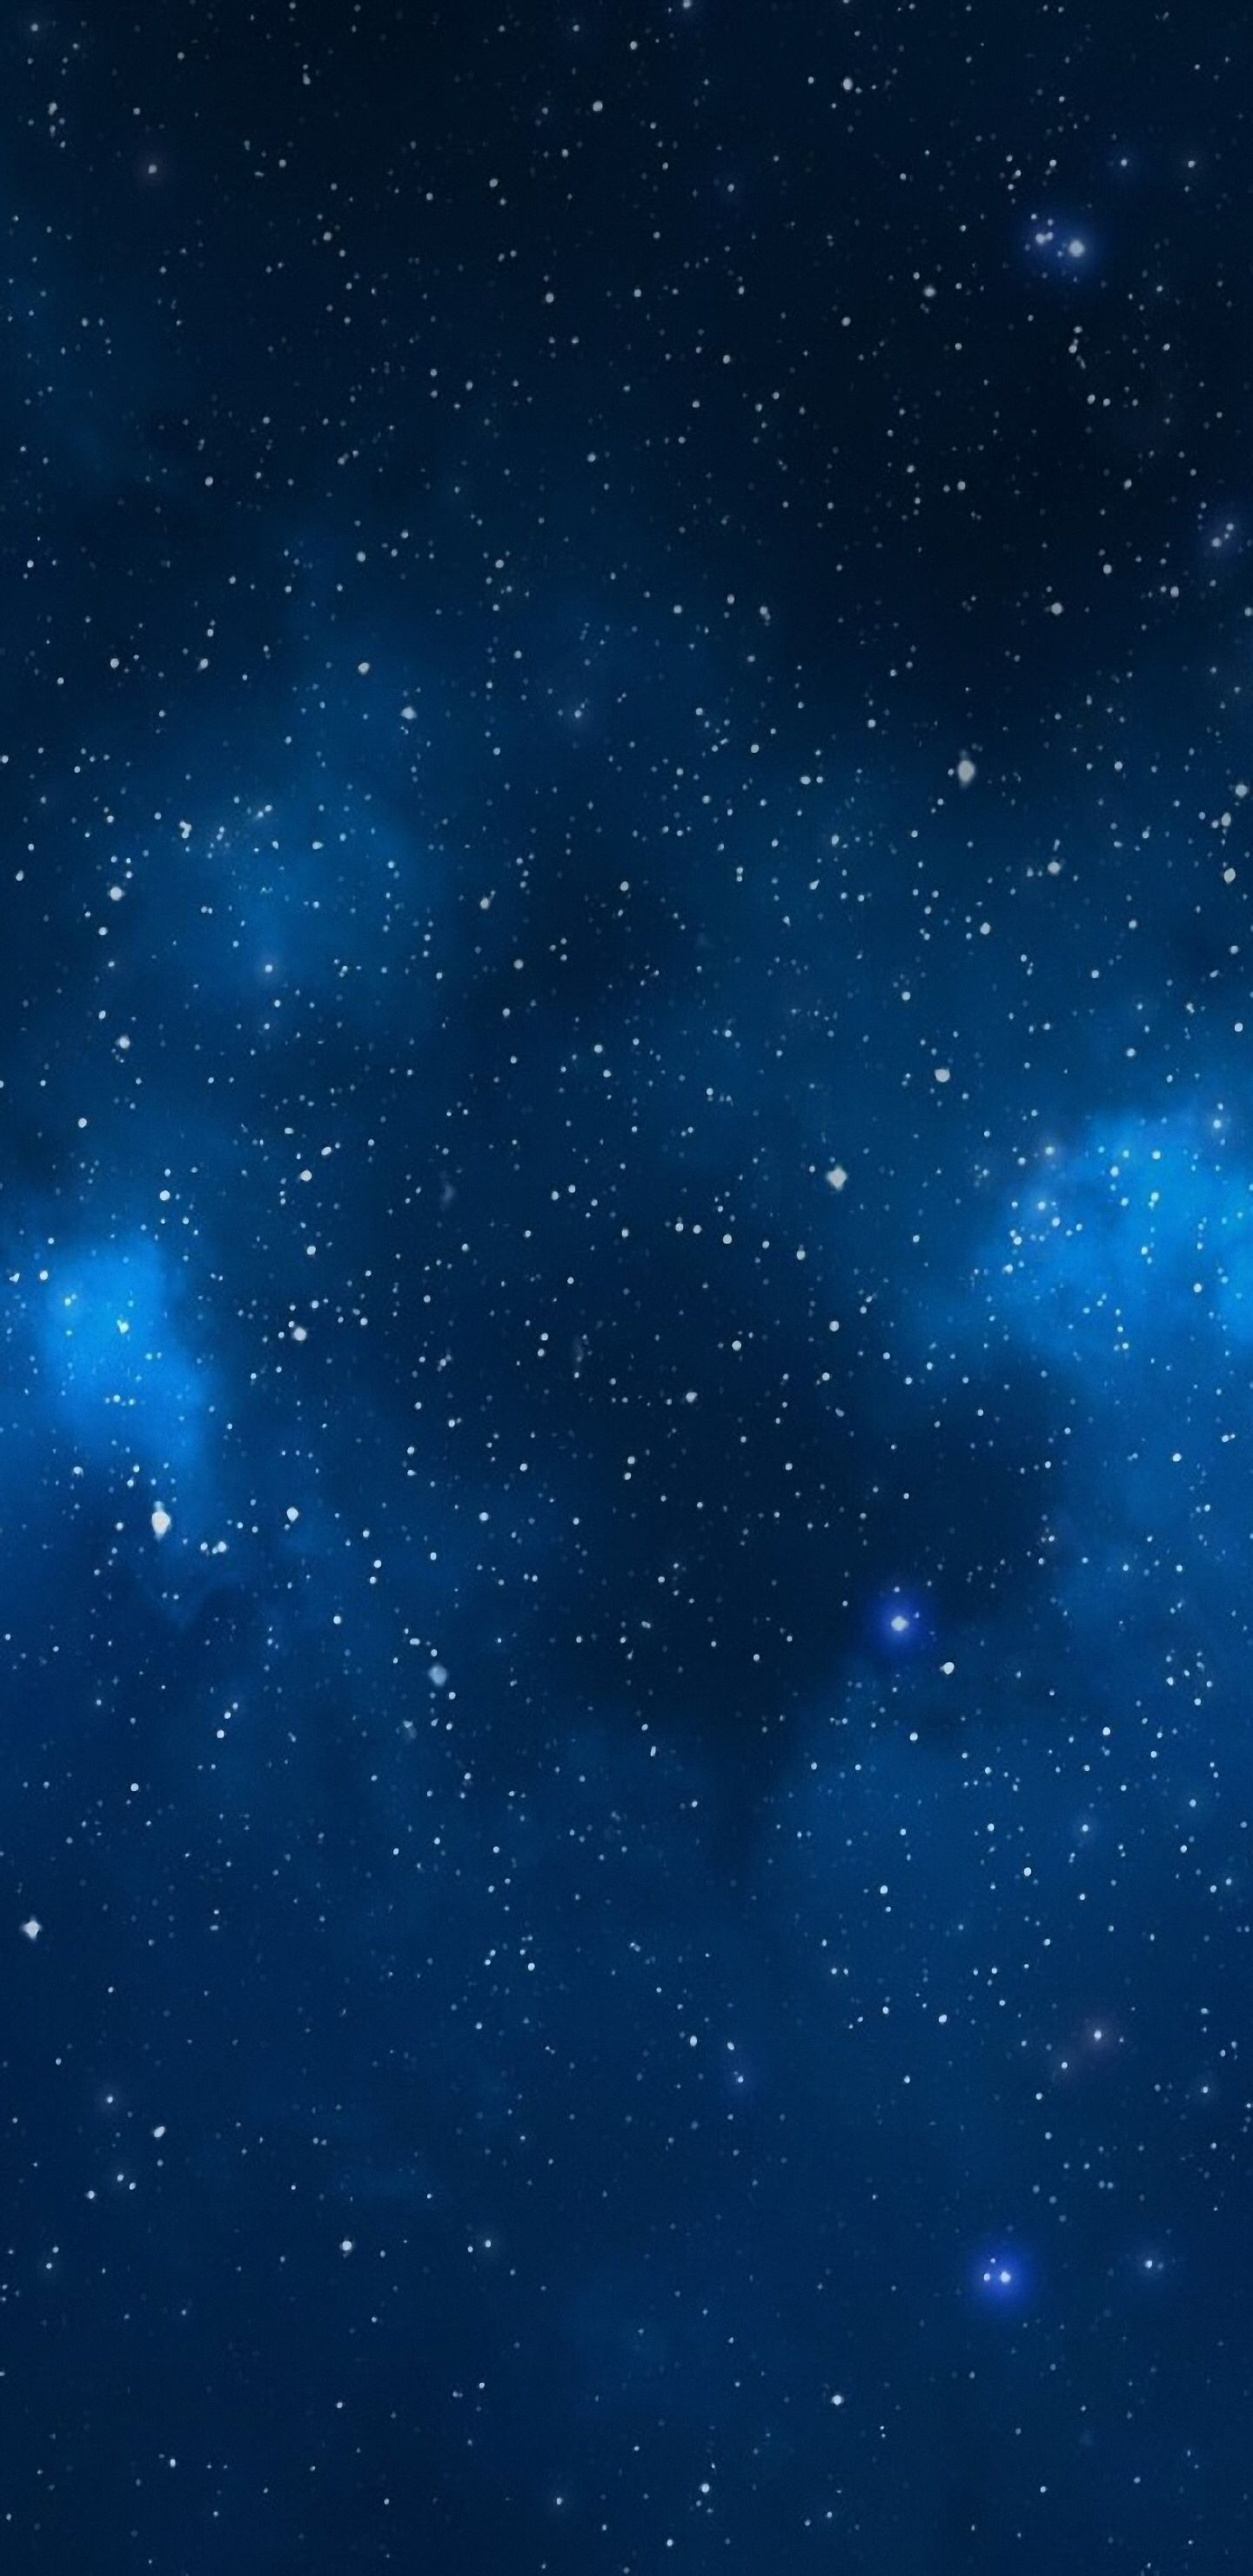 Blue Night Sky Wallpapers Top Free Blue Night Sky Backgrounds Wallpaperaccess